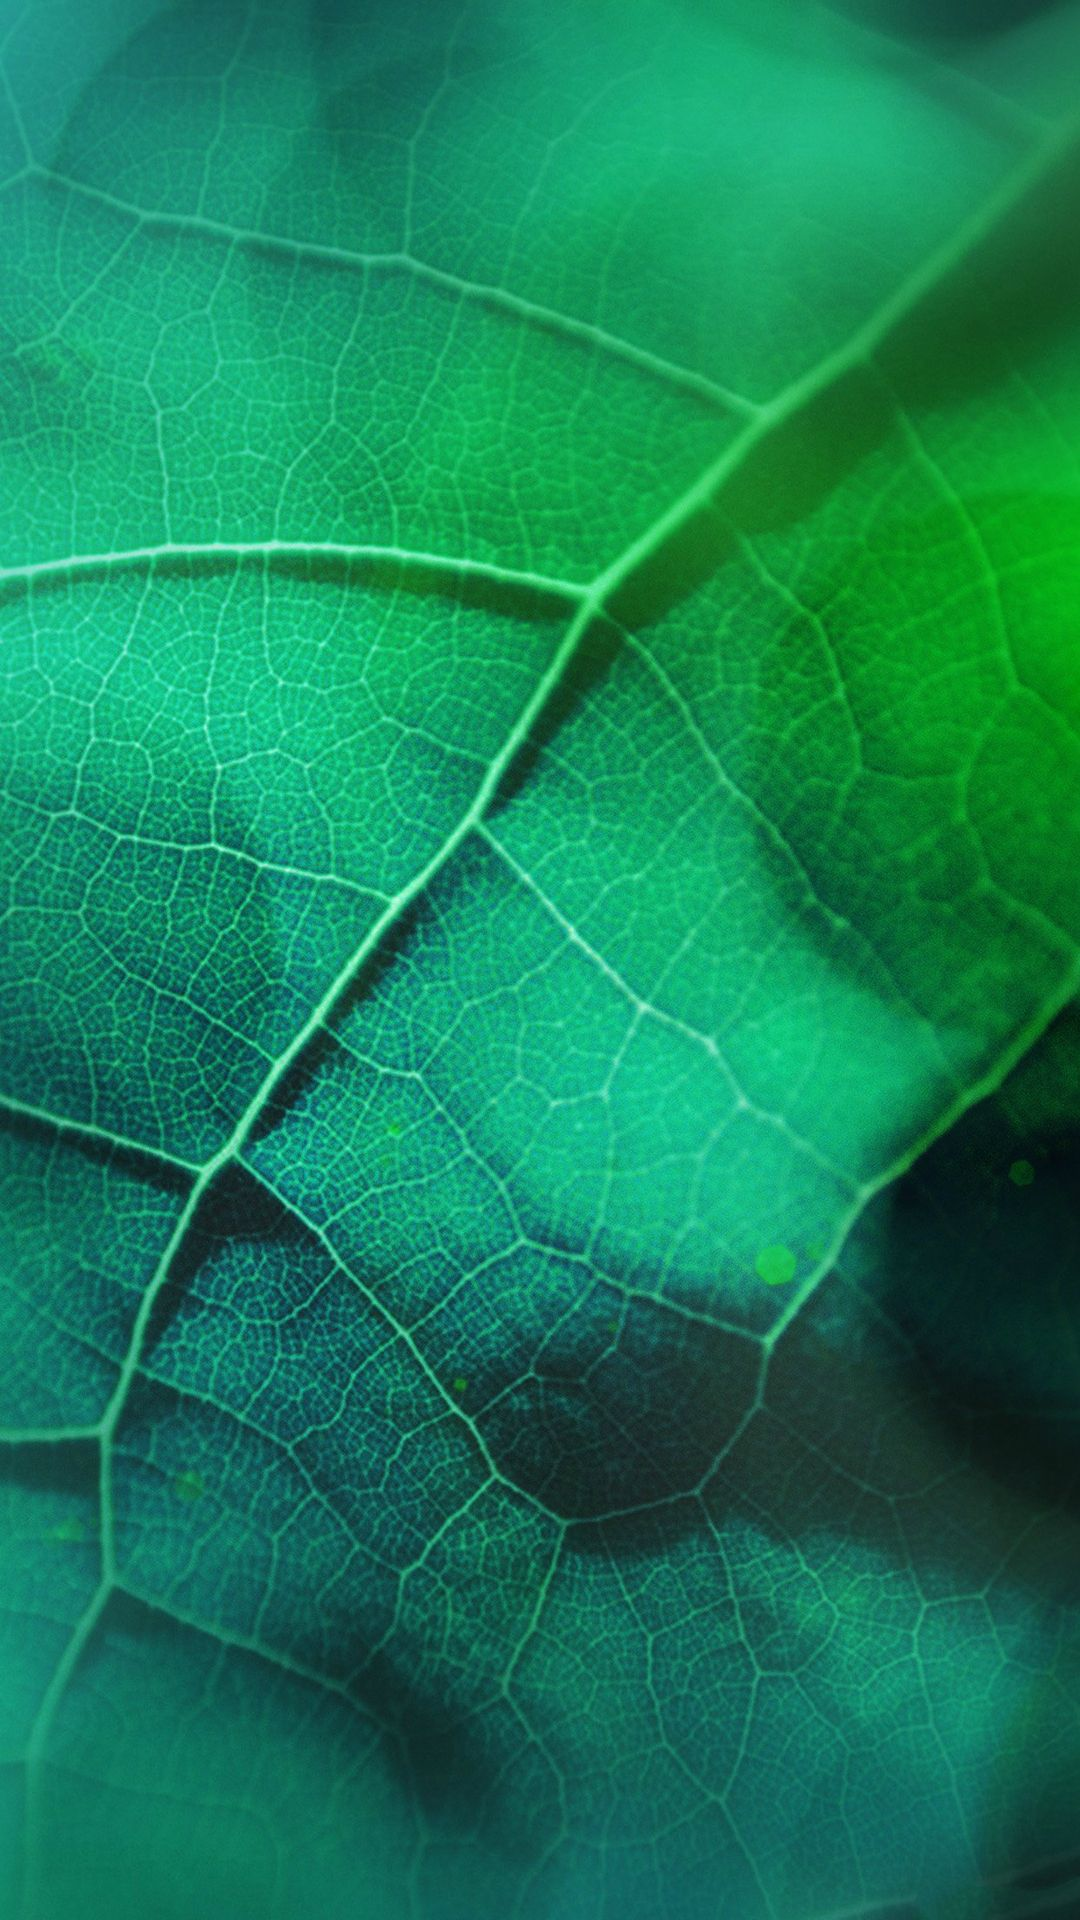 Wallpaper iphone green - Leaf Flare Nature Green Wood Love Pattern Iphone 6 Wallpaper